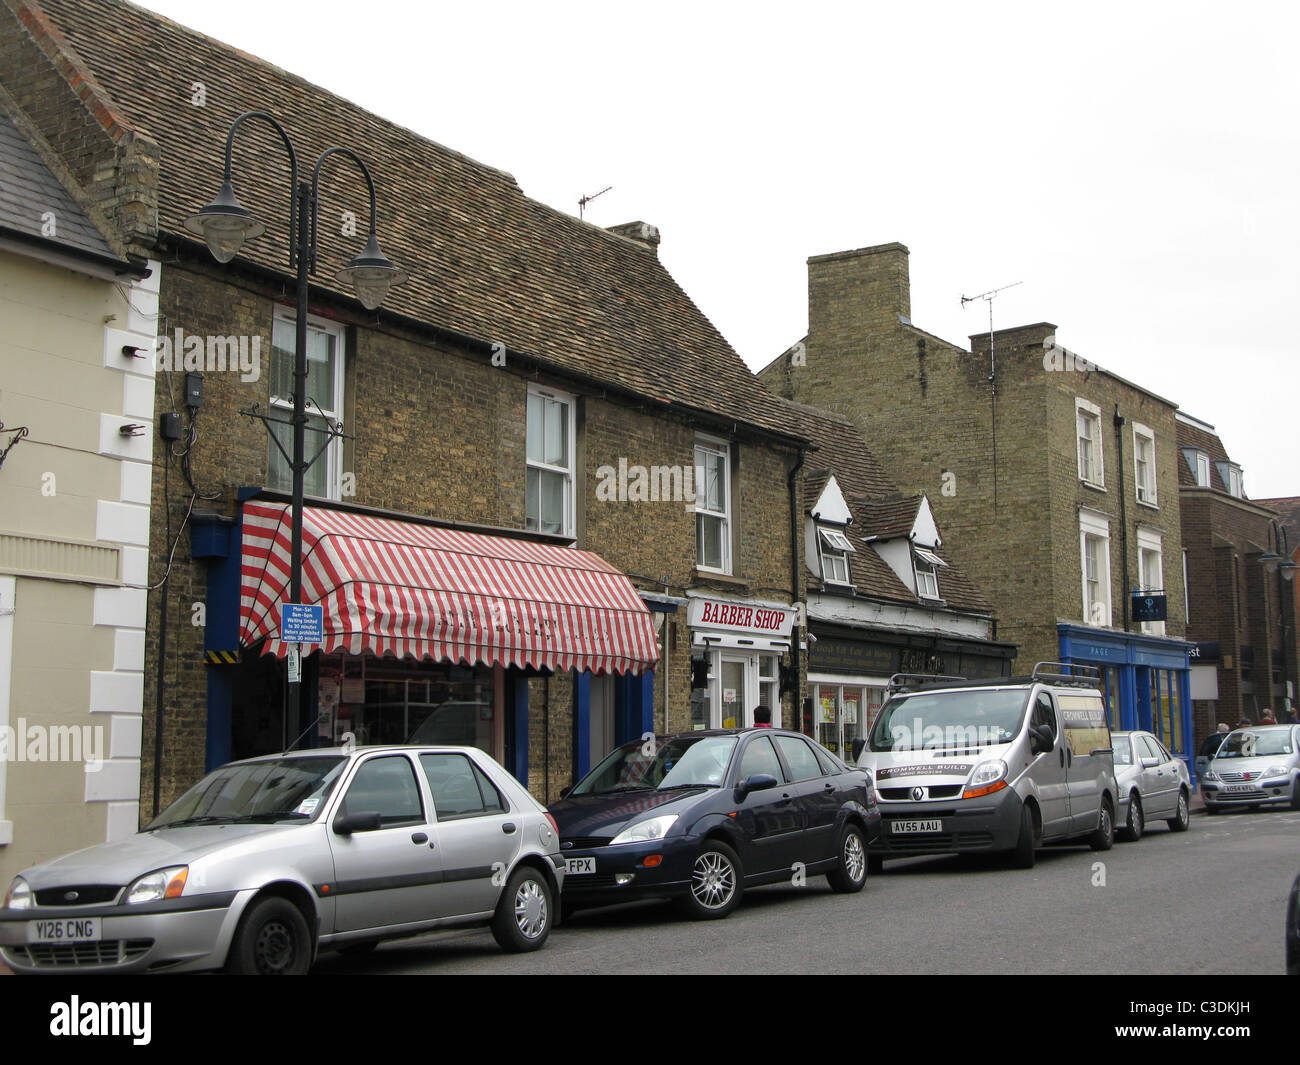 Butcher's Shop in market town (Ely) - Stock Image